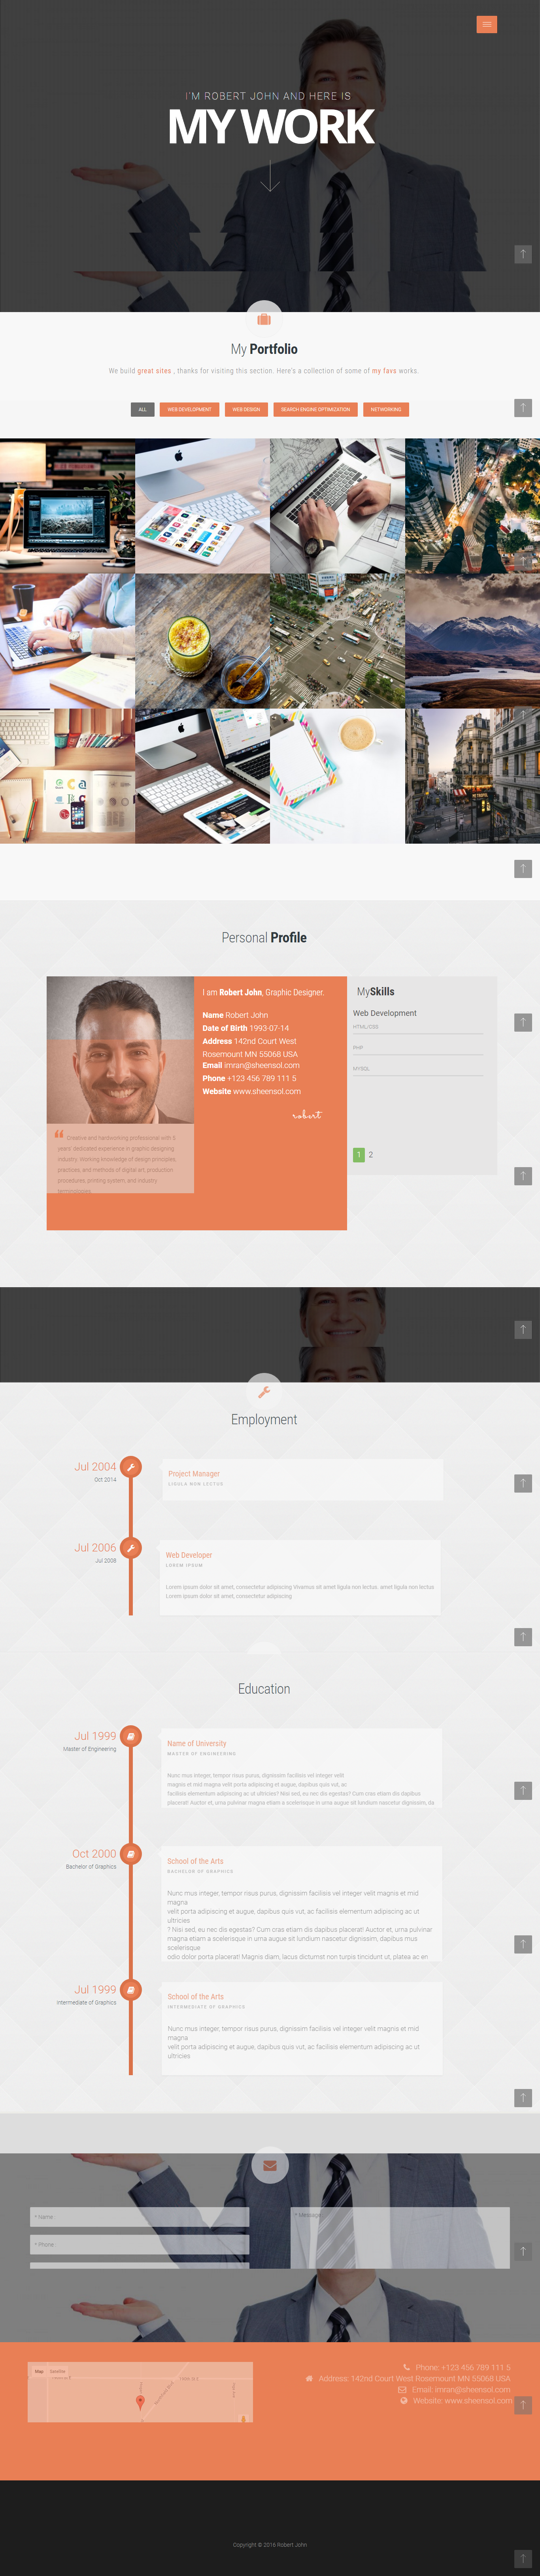 Premium - Multiuser Resume Manager by sheensol | CodeCanyon